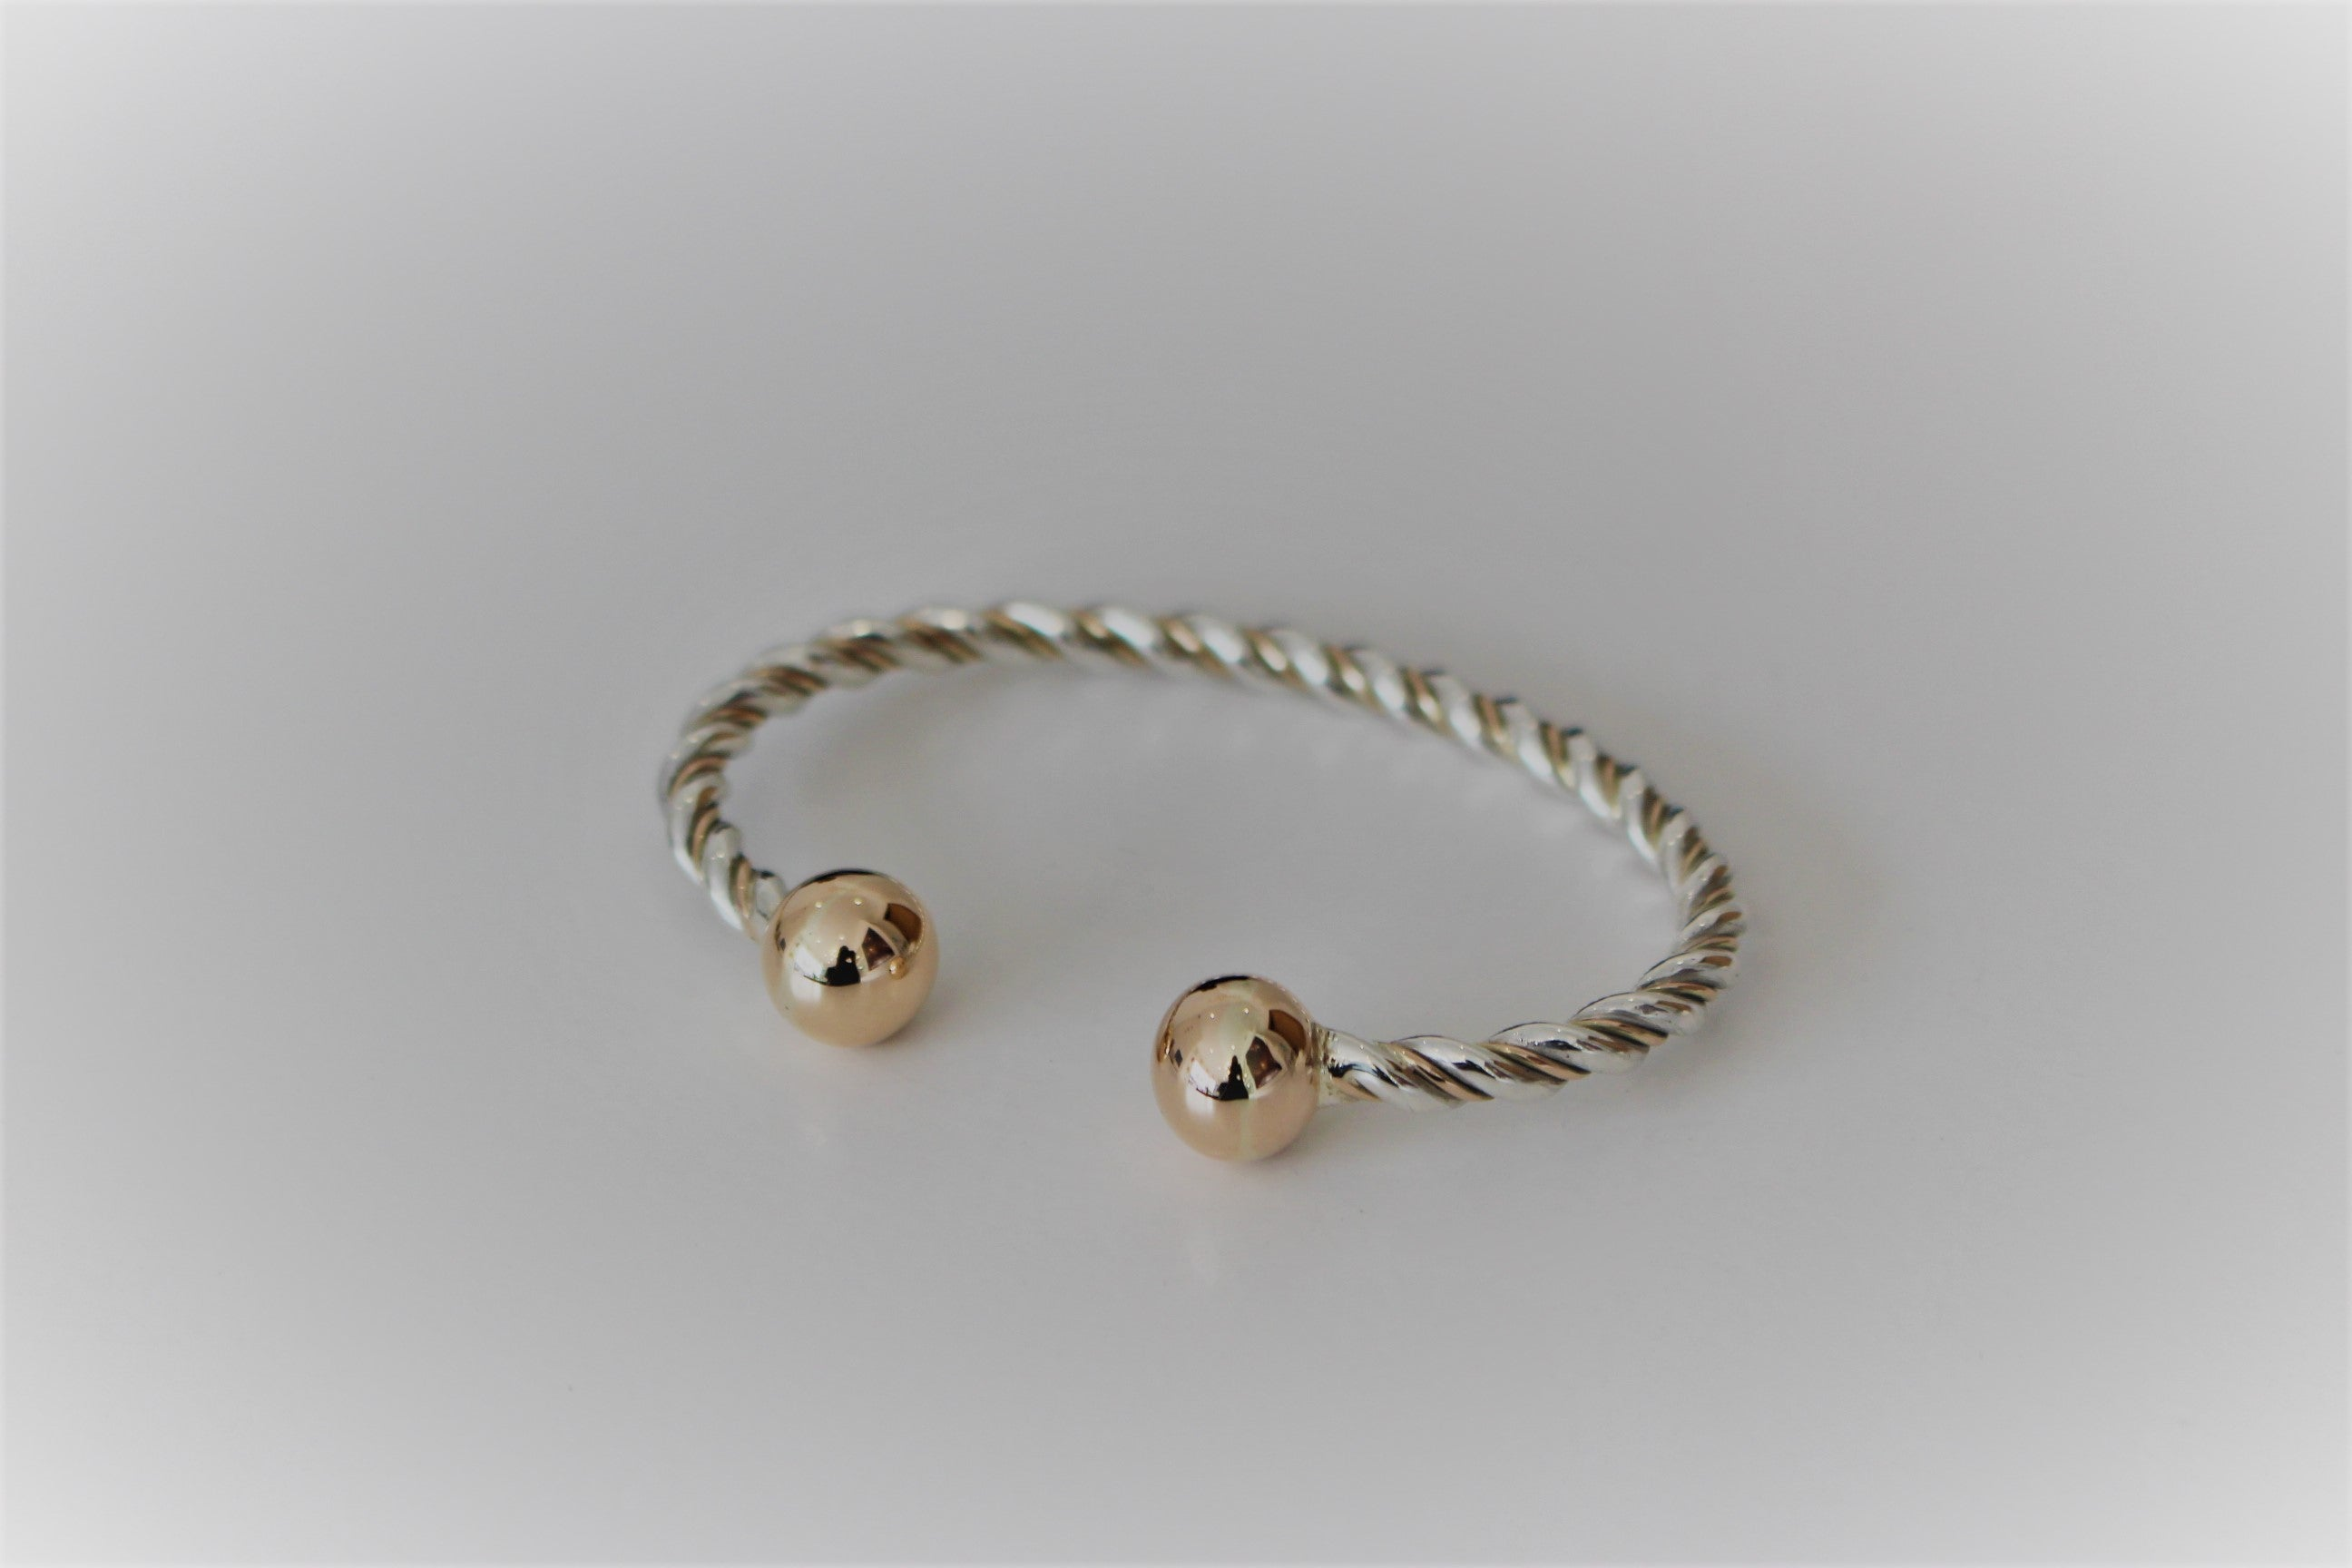 Duo-Tone Twisted Bangle